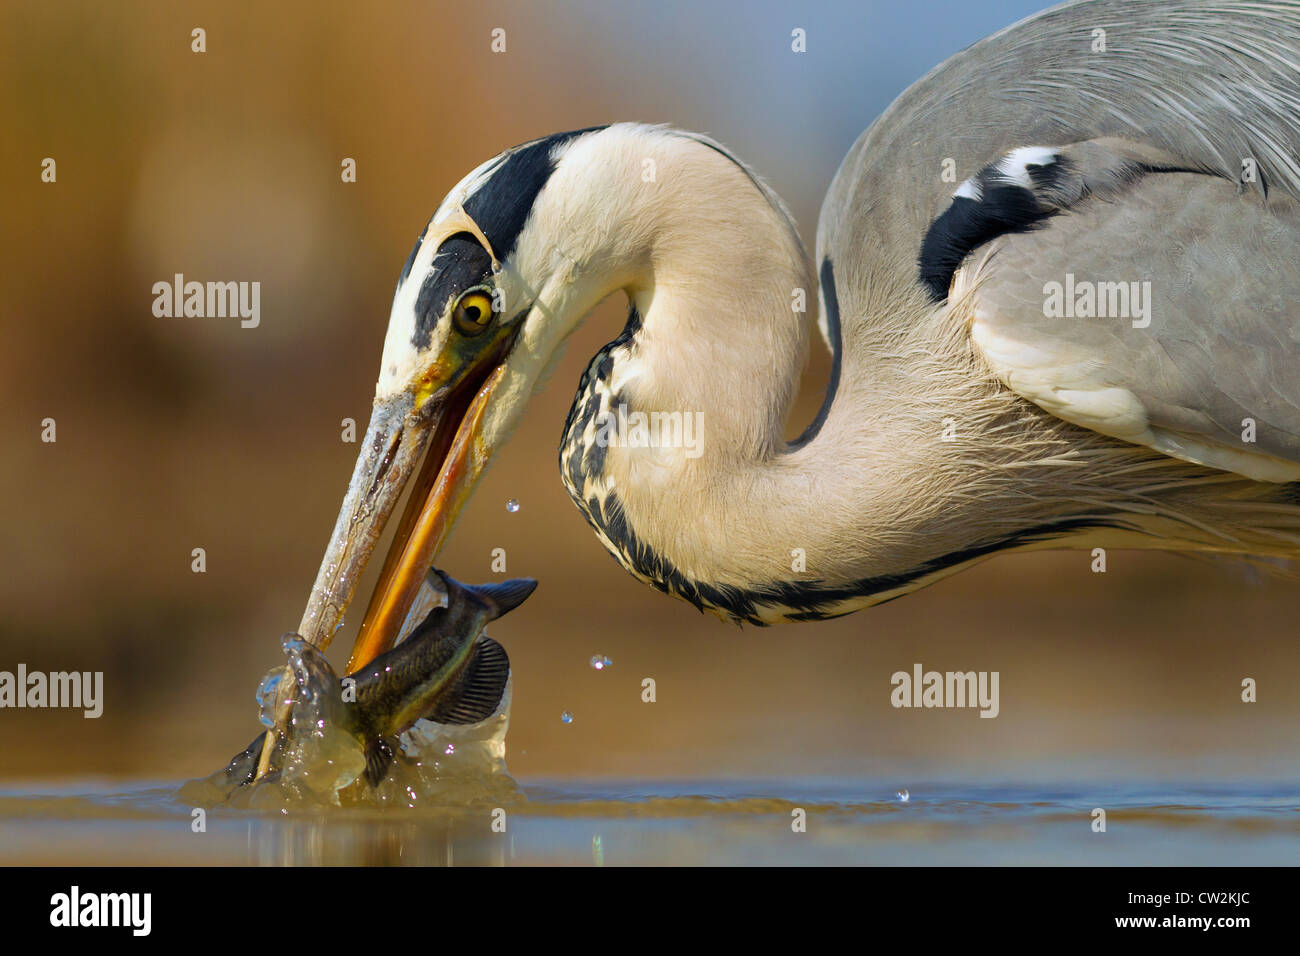 A Grey Heron Bird Stock Photos   A Grey Heron Bird Stock Images   Alamy Grey Heron Ardea cinerea with a fish in its beak Hungry   Stock